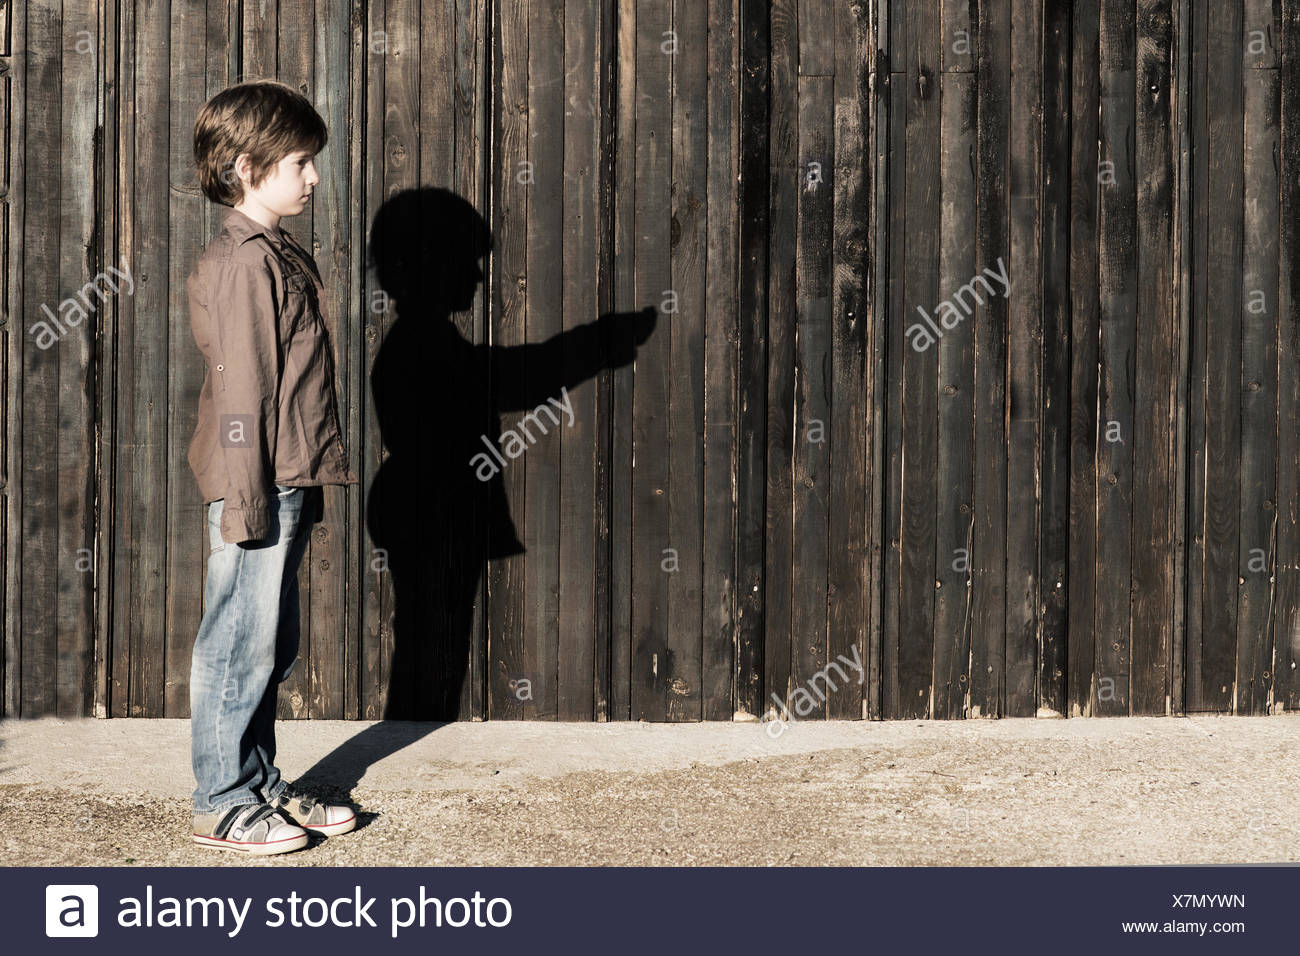 Boy standing next to a wooden fence with alter ego shadow Stock Photo